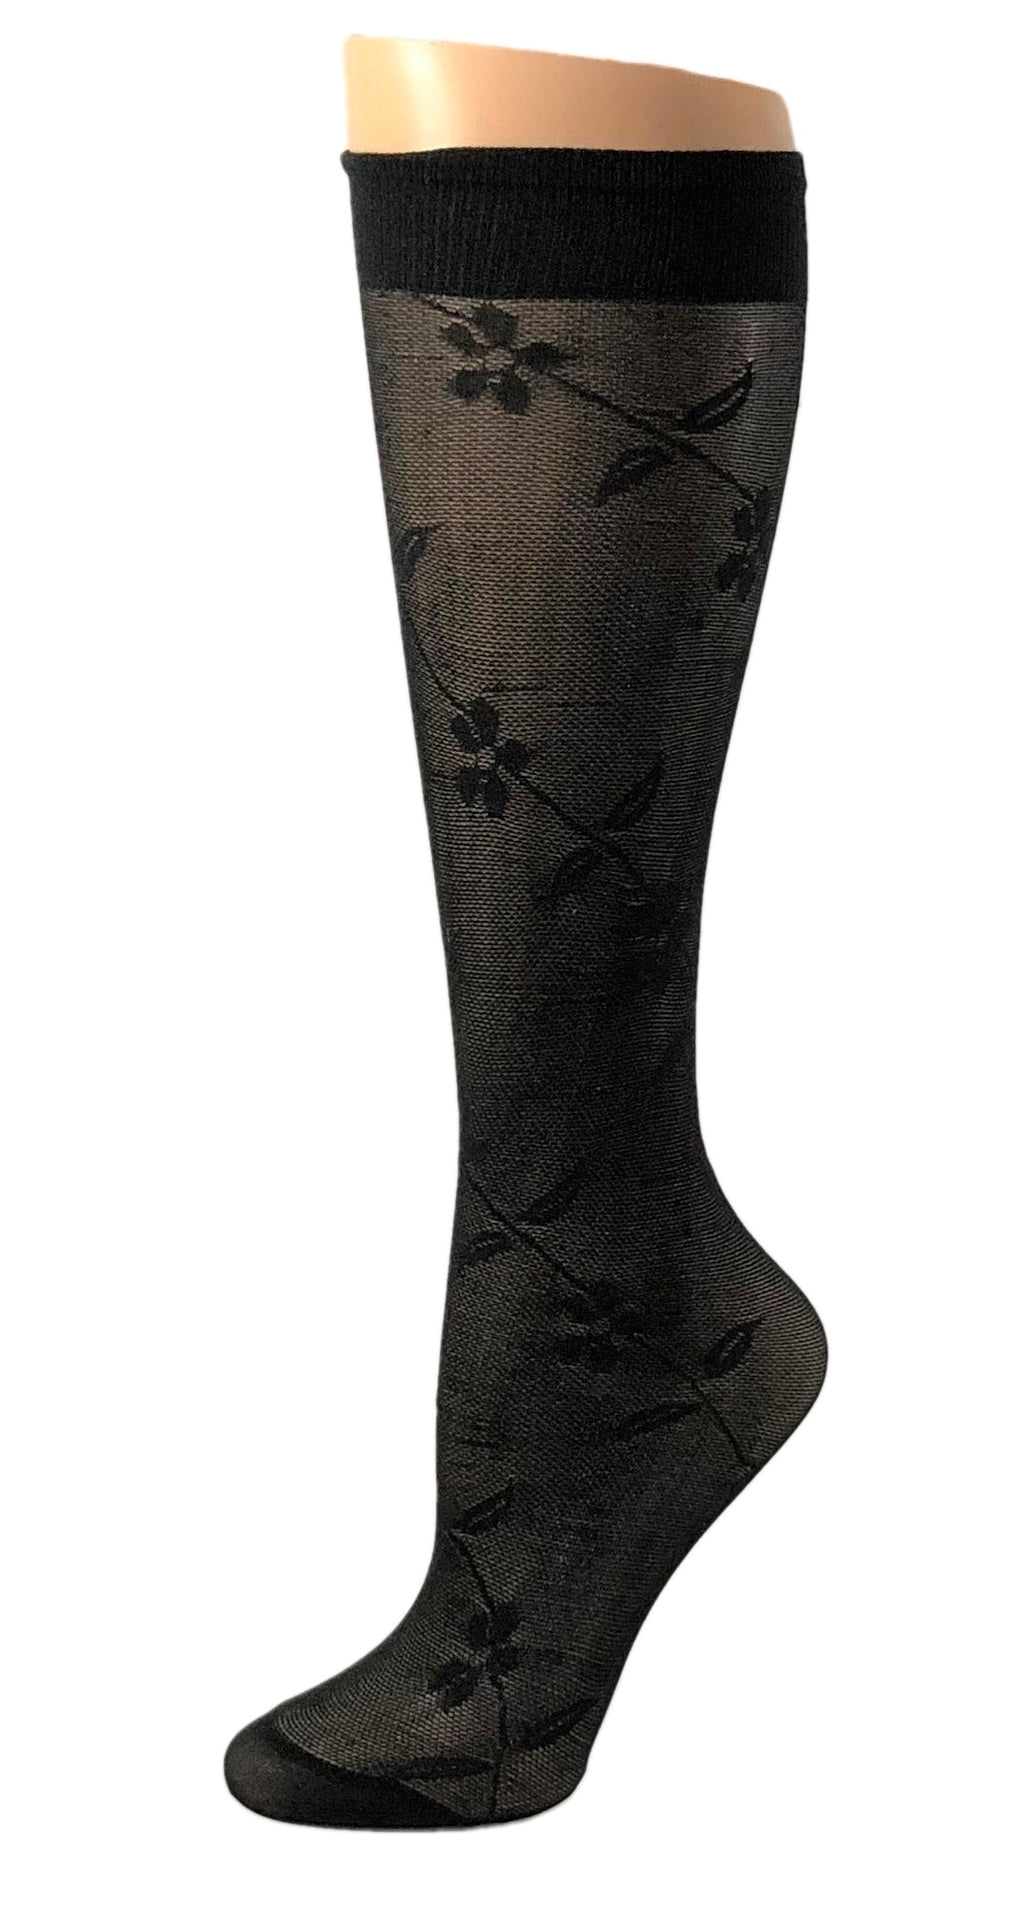 Black Flowers knee high Socks - Global Trendz Fashion®